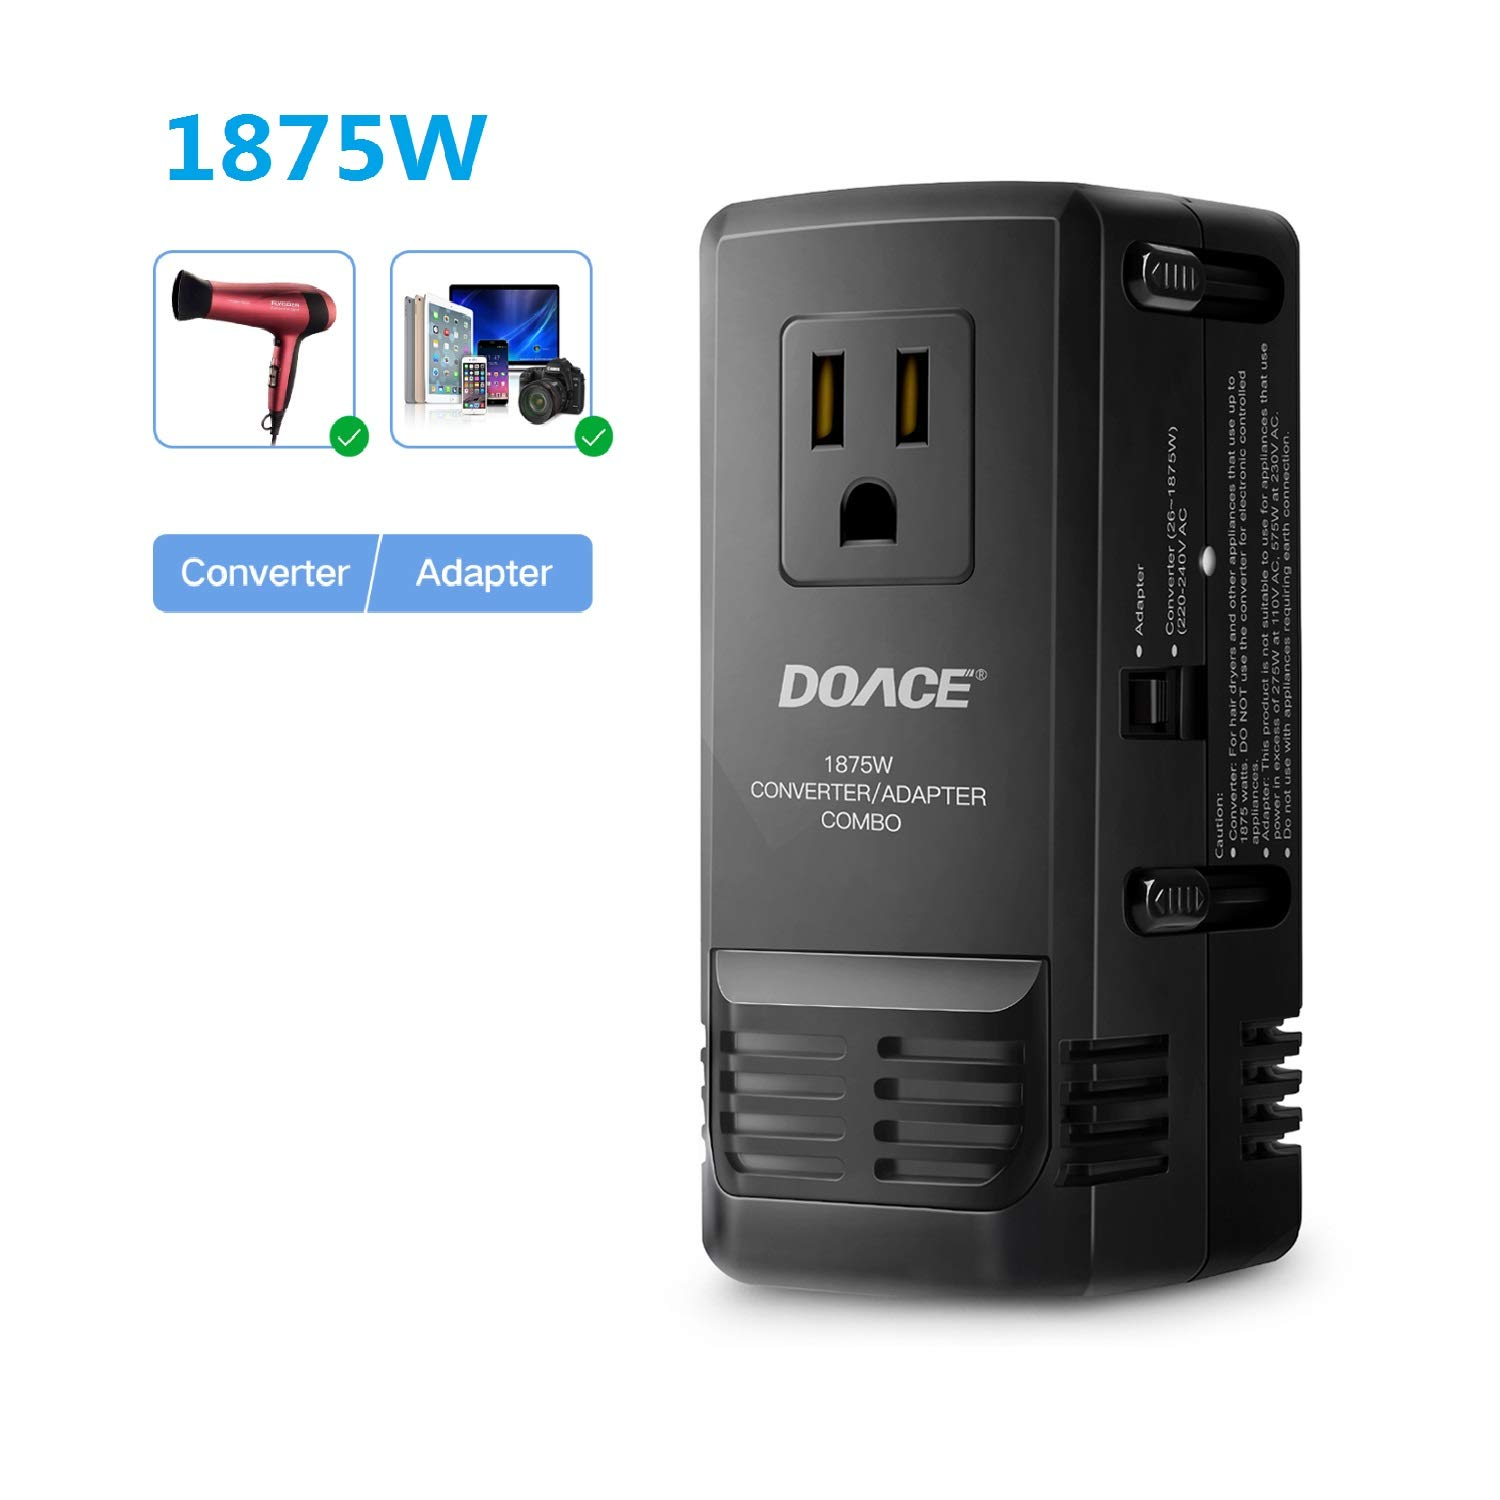 DOACE 1875W Travel Power Converter and Adapter Combo, Step Down Voltage Transformer 220V to 110V for Hair Dryers, International EU/UK/AU/US Wall Charger Plugs for 150 Countries (1875W) (1875W)